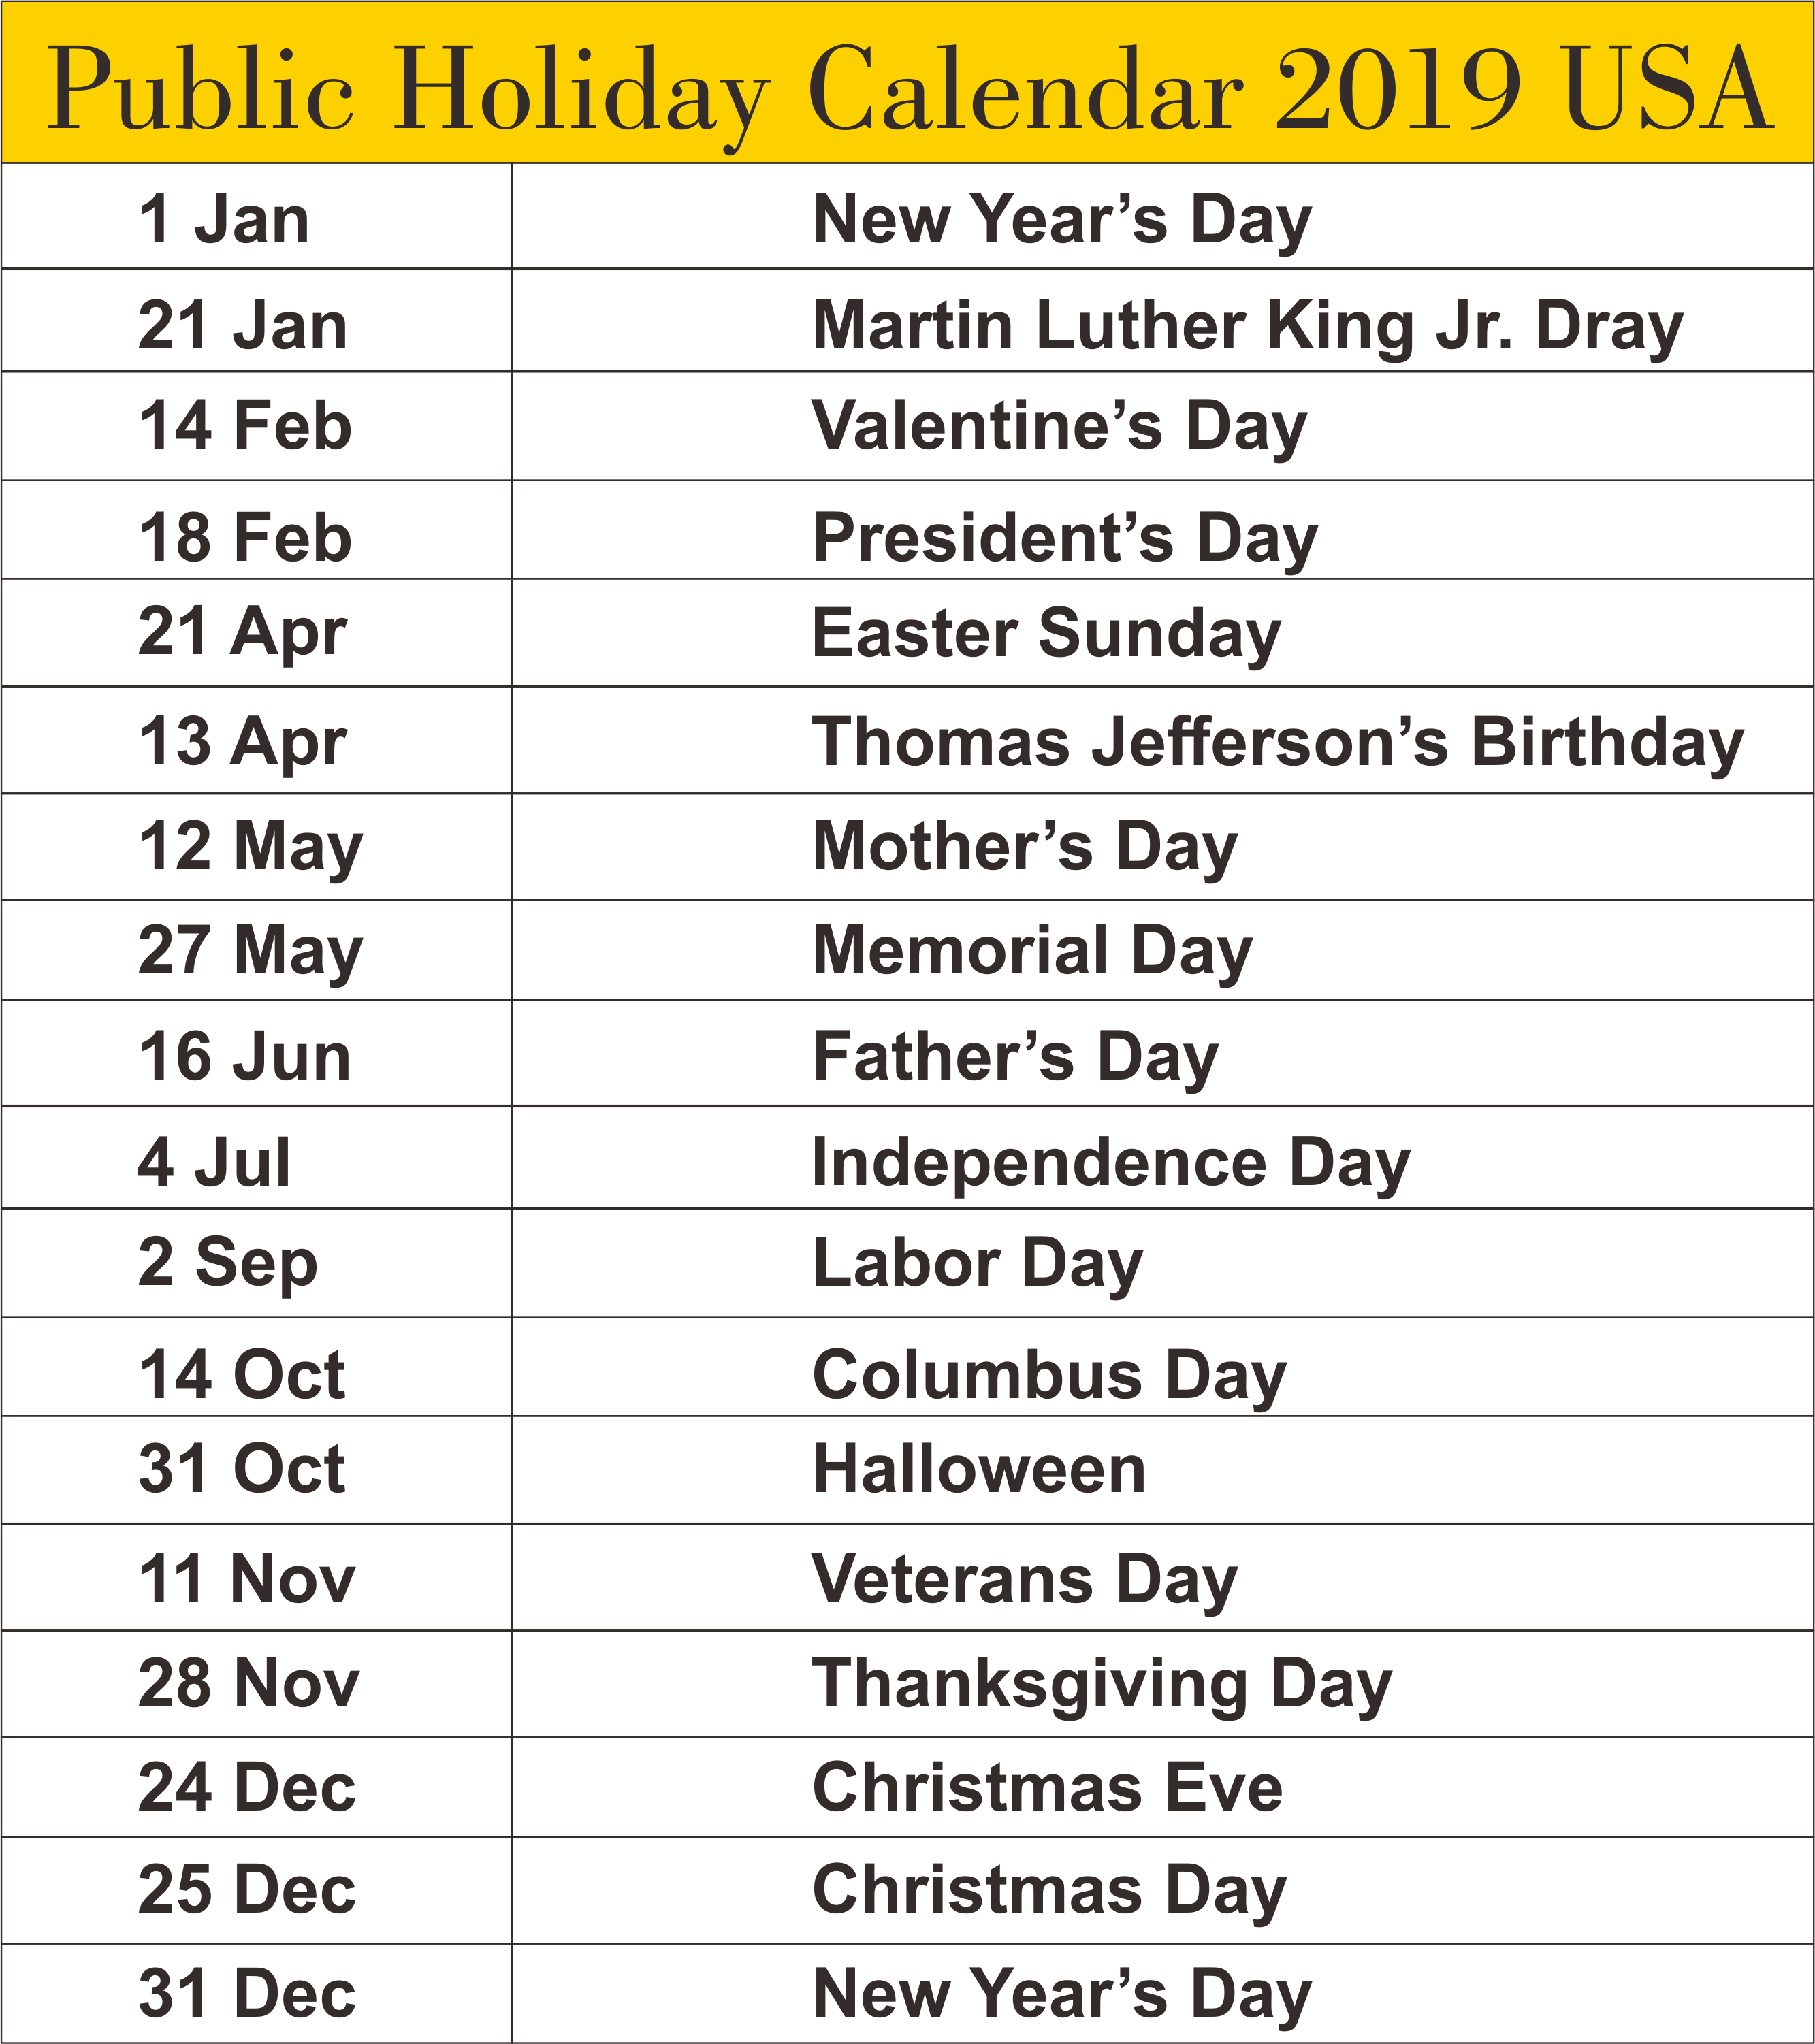 USA Public Holiday 2019 Templates